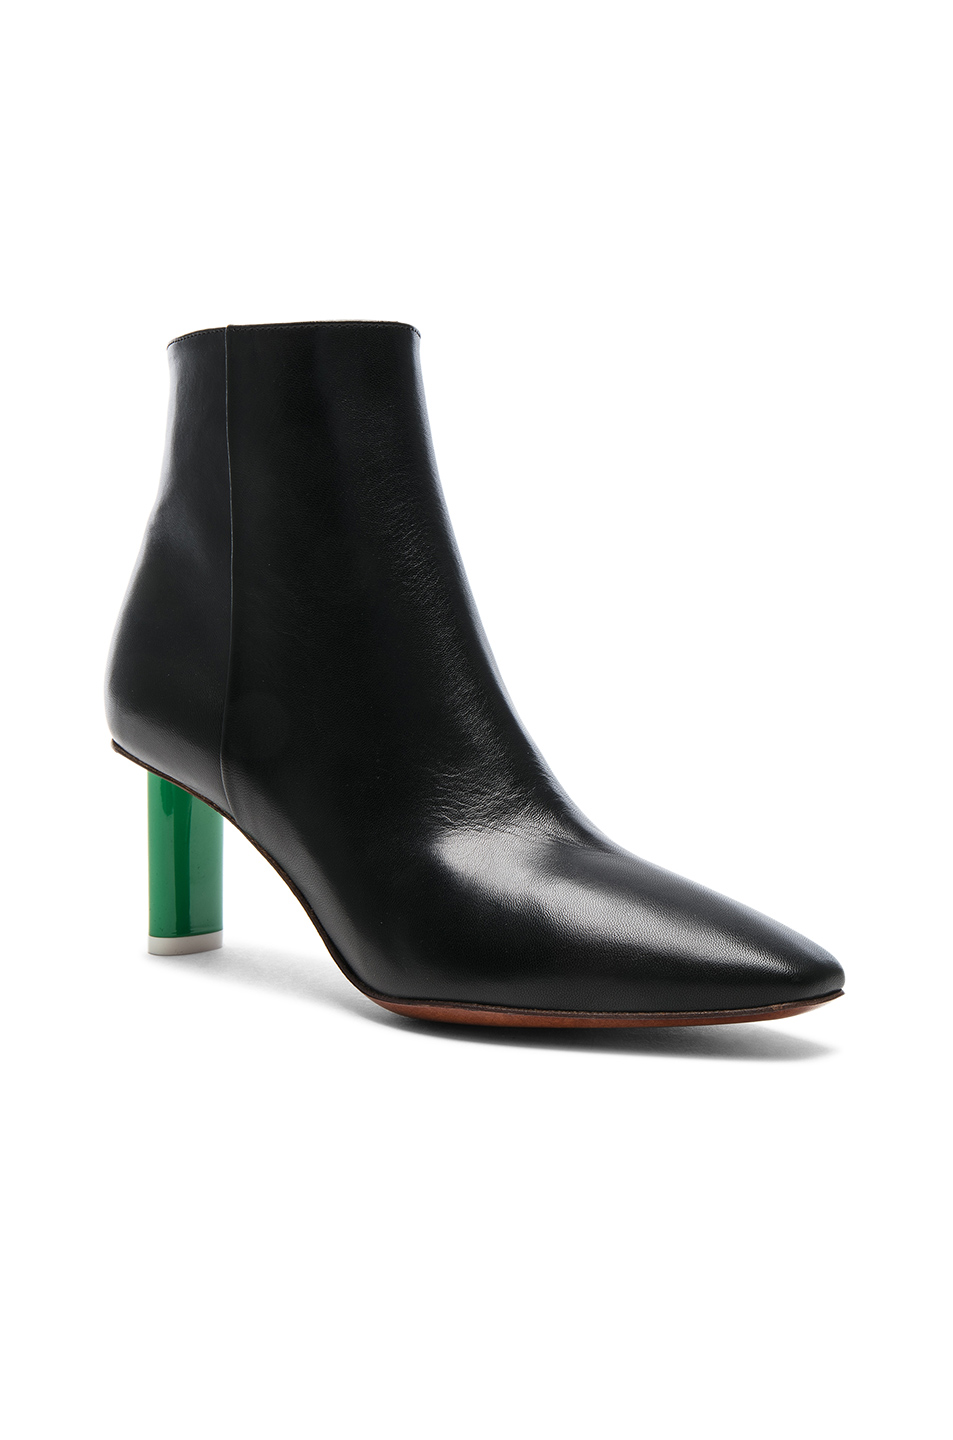 080faa81afd Buy Original VETEMENTS Lighter Heel Leather Ankle Boots at ...